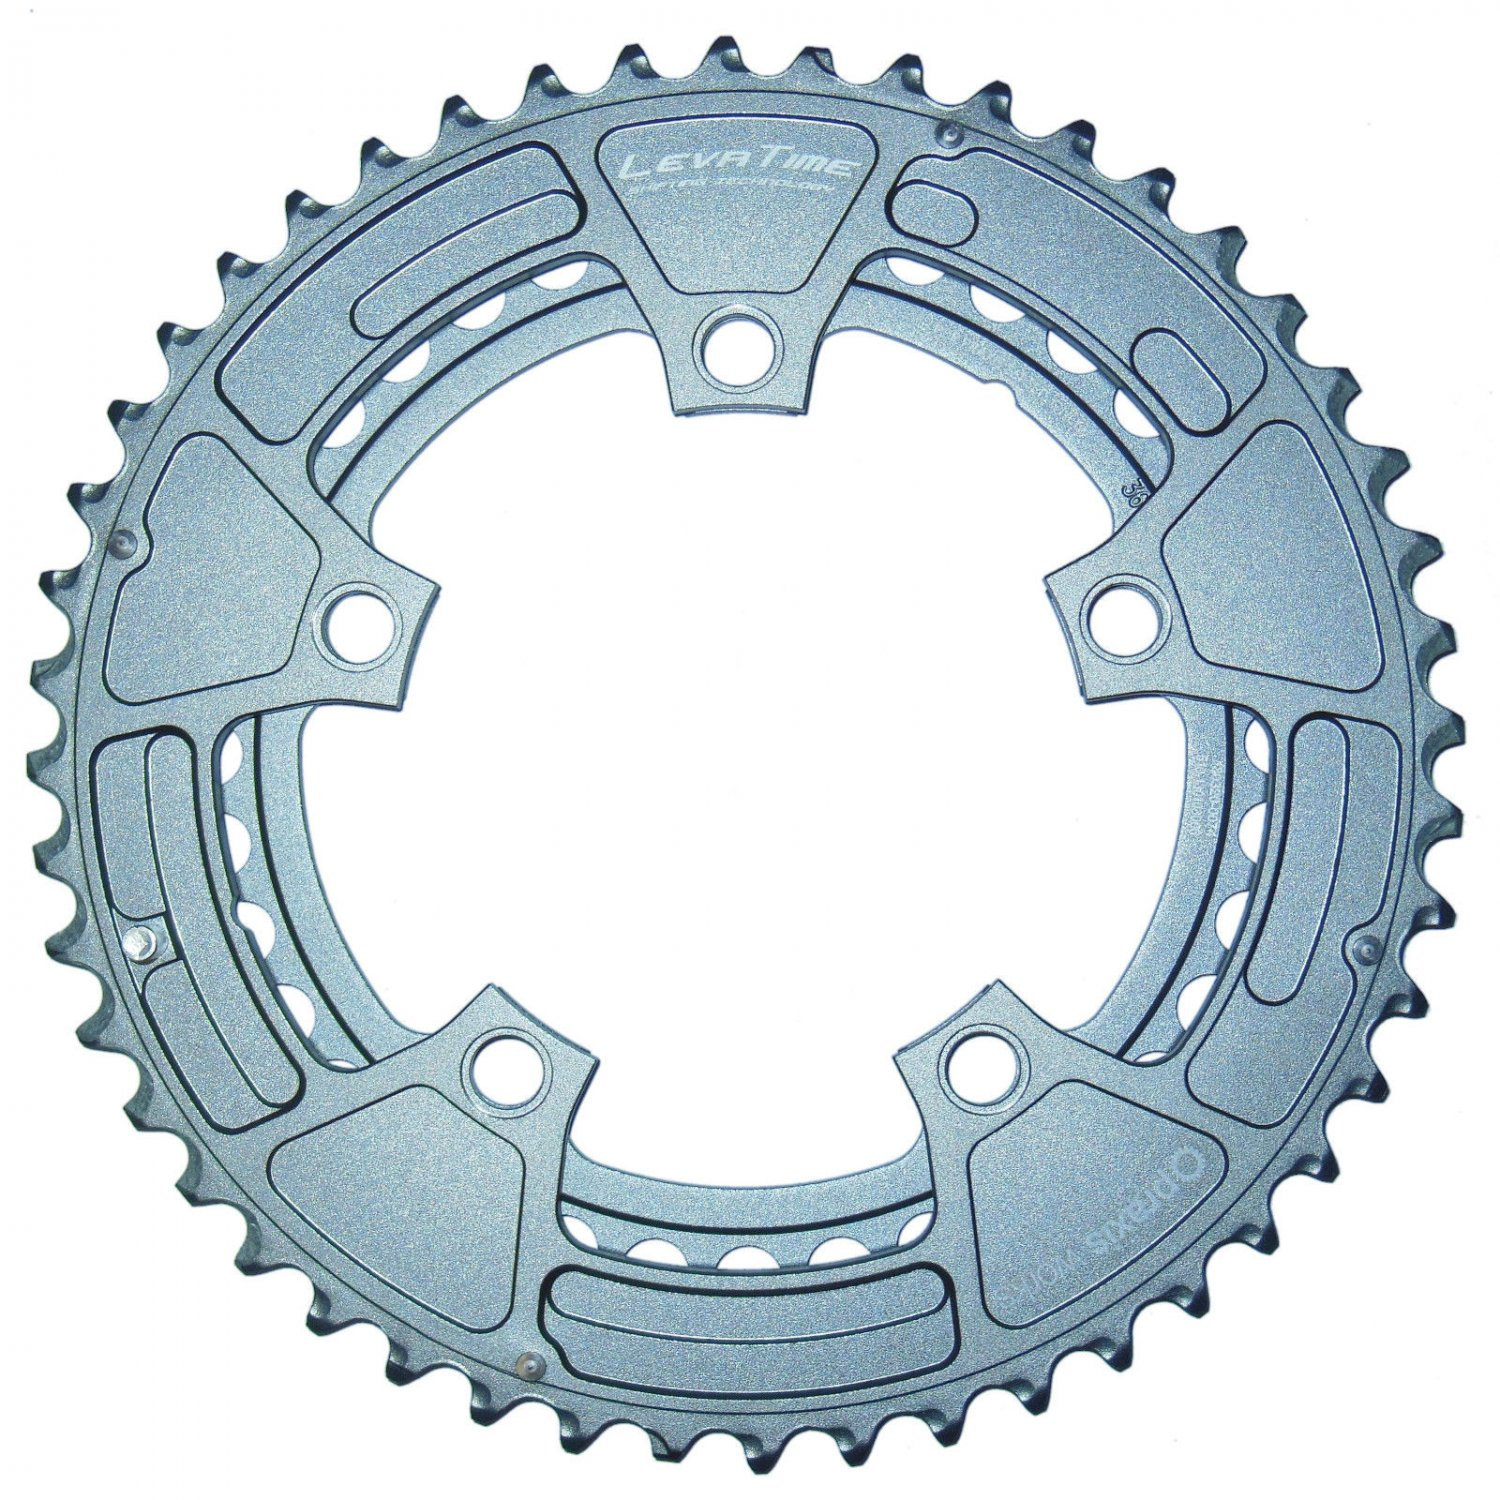 Open-Stock Praxis Levatime Cold Forged 48/36 CX Cyclocross/Gravel Grinder Chainring Set 110 BCD